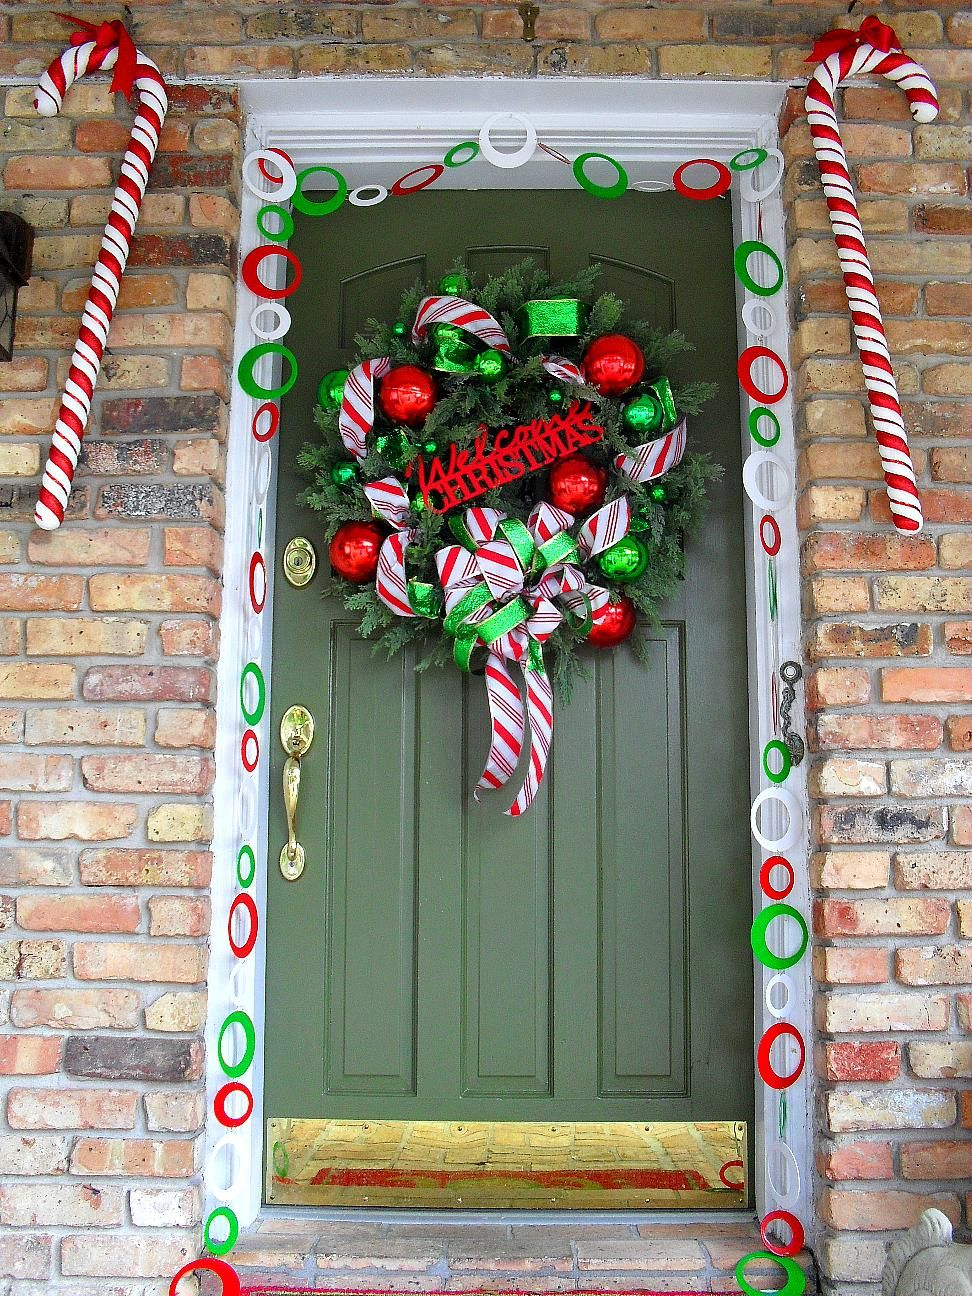 Candy Cane Lane Decorations 50 Best Christmas Door Decorations For 2018 🎄  Candy Canes